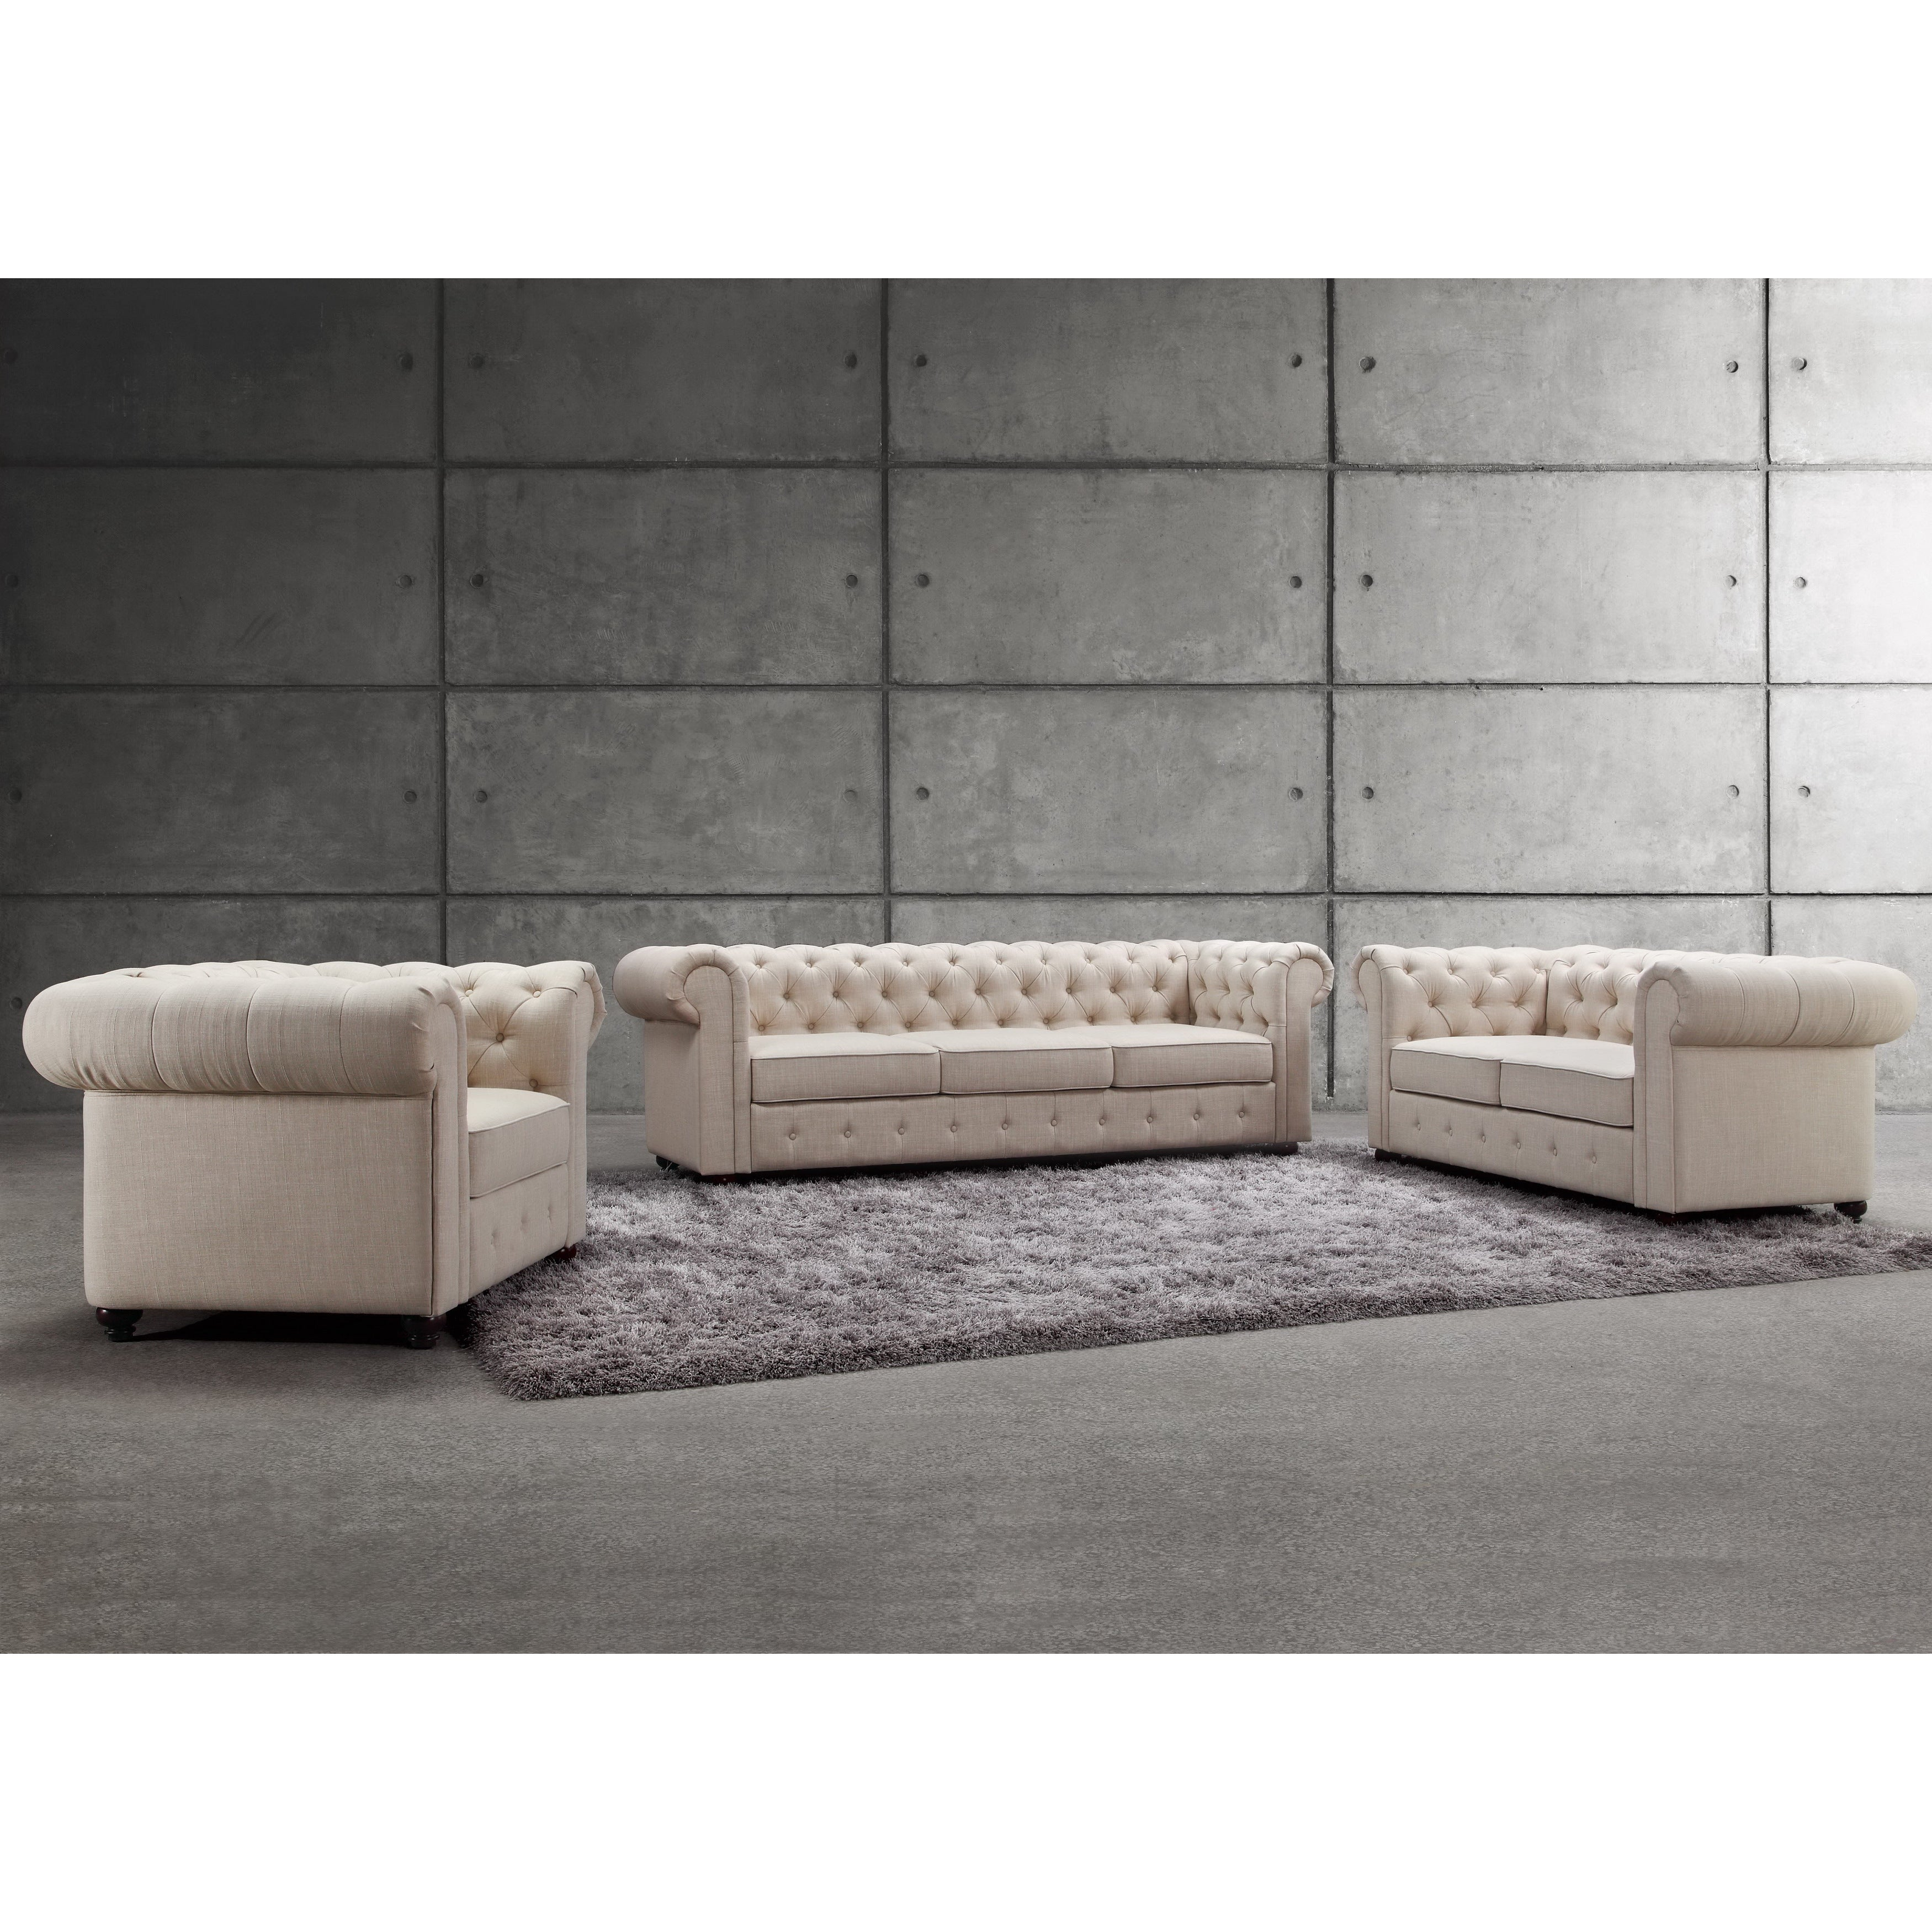 Garcia Deeply Hand-tufting Rolled Arms 3 Piece Sofa Set